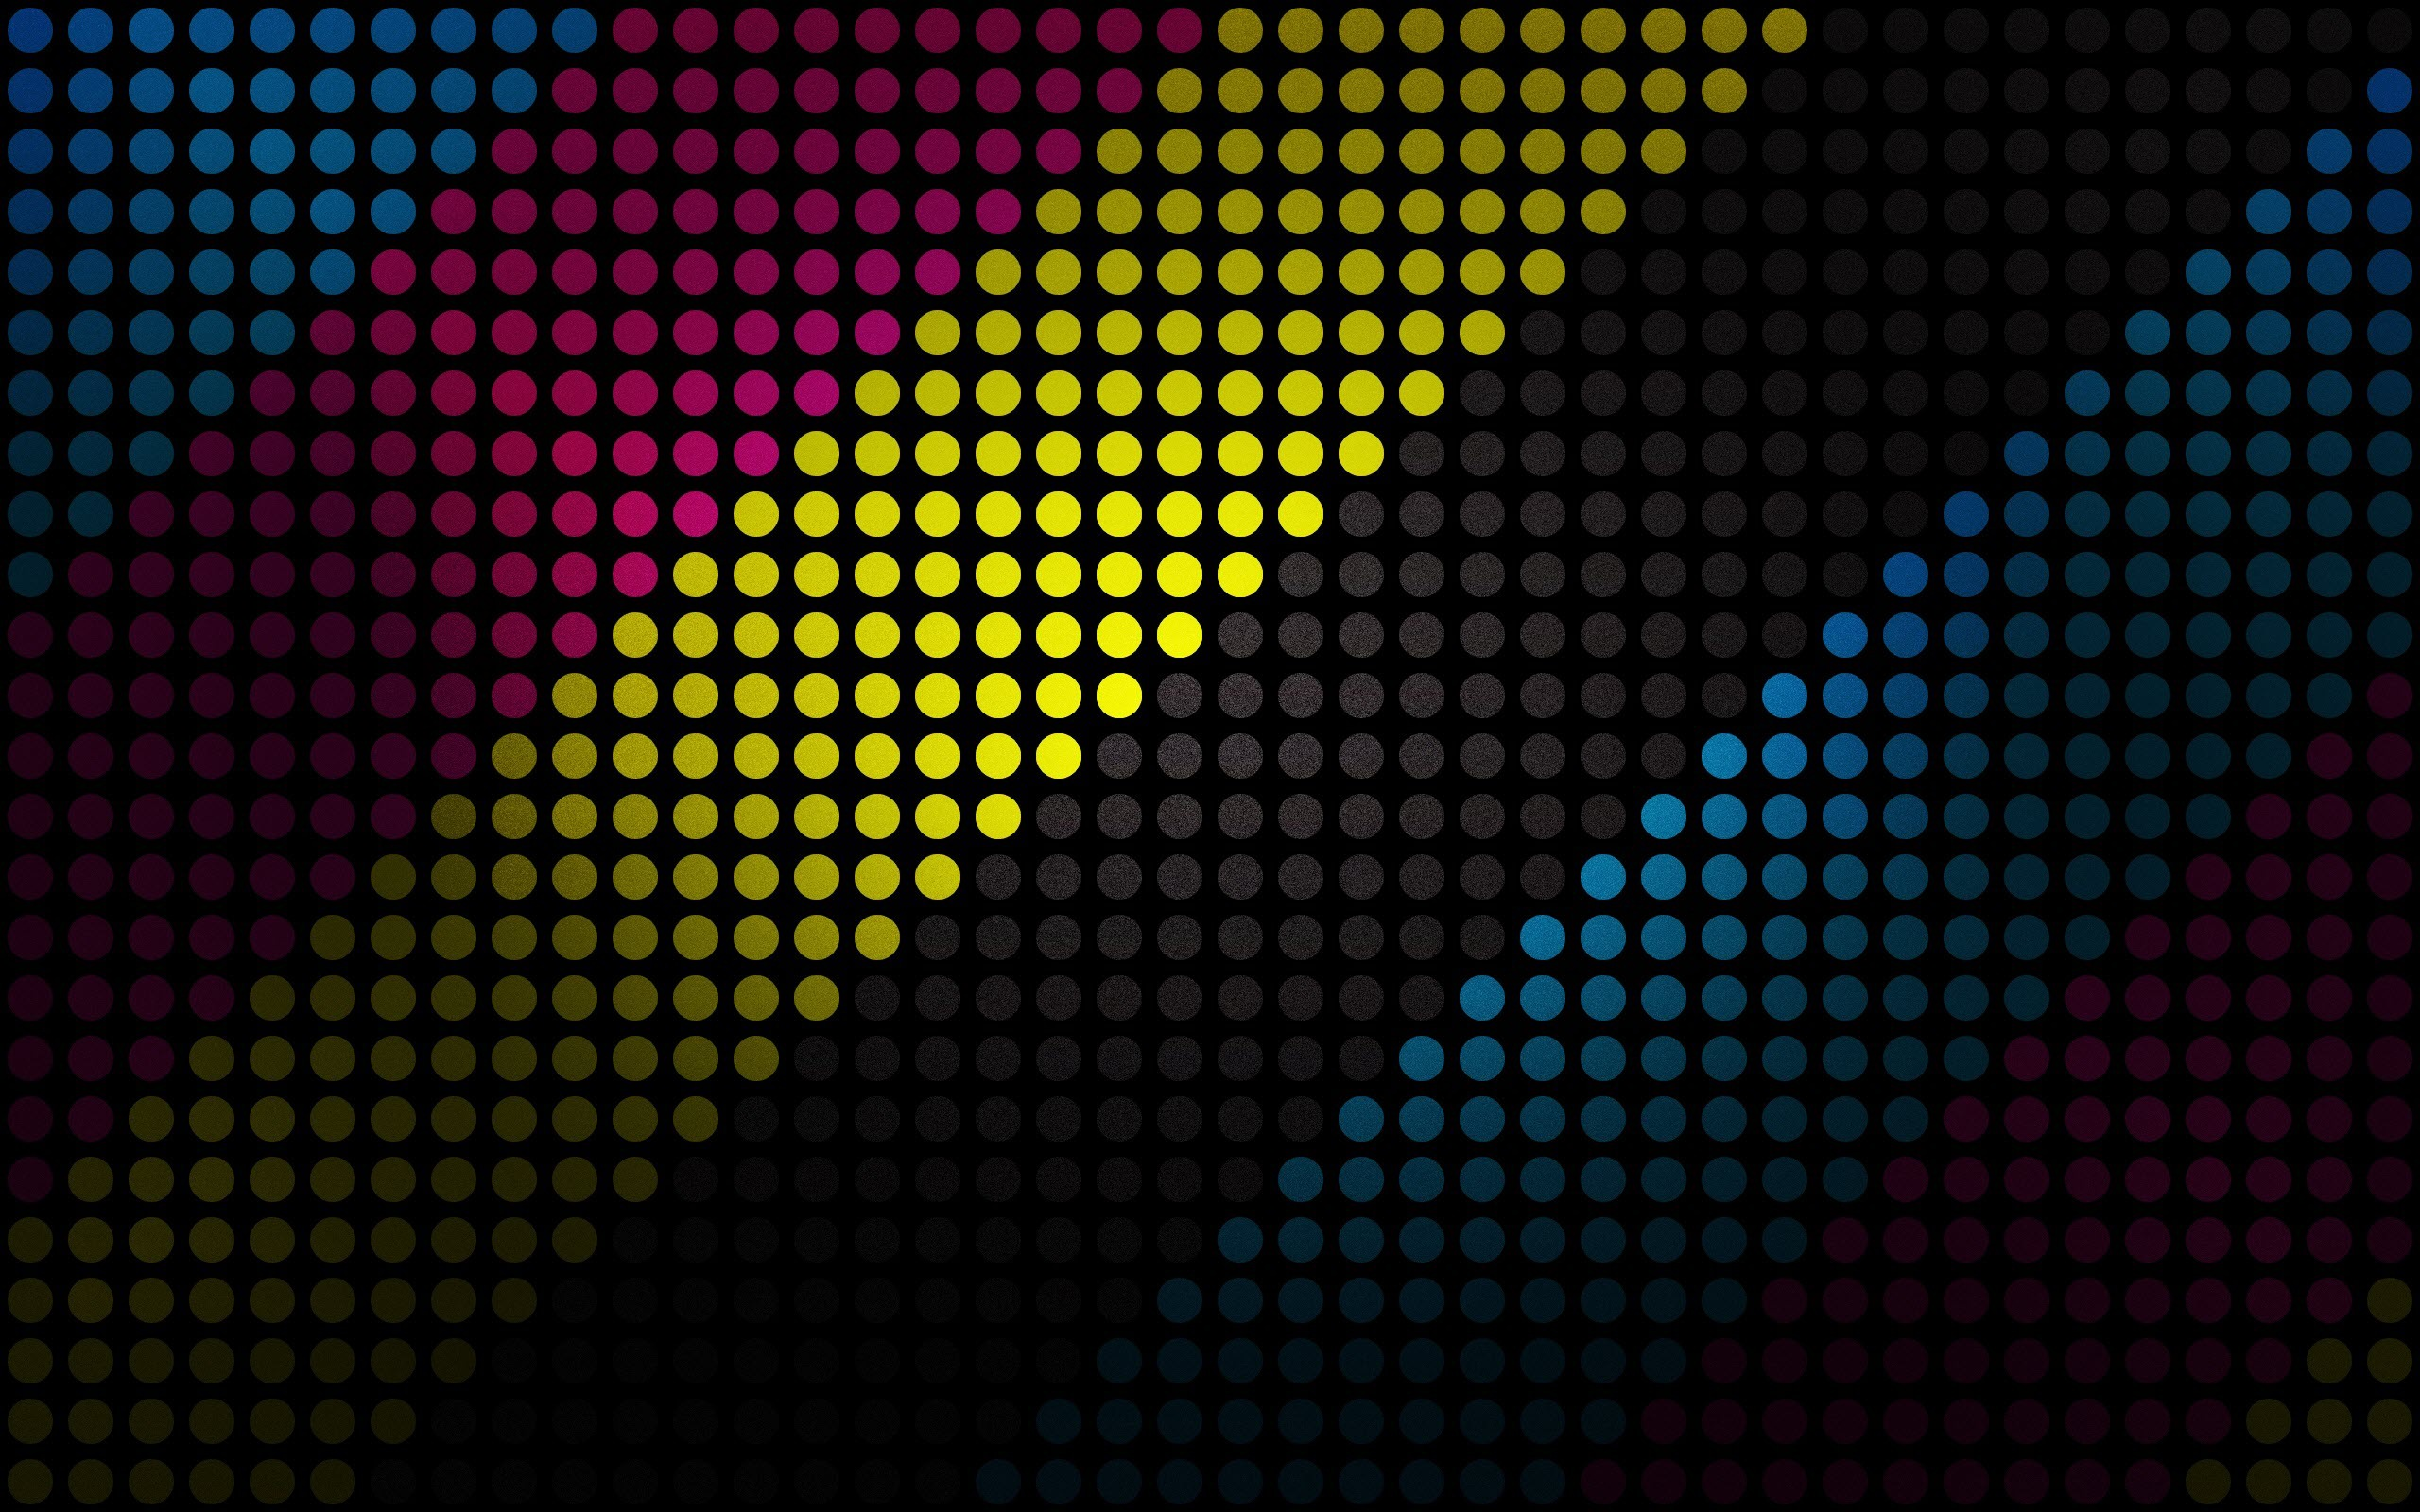 Wallpapers Coolest